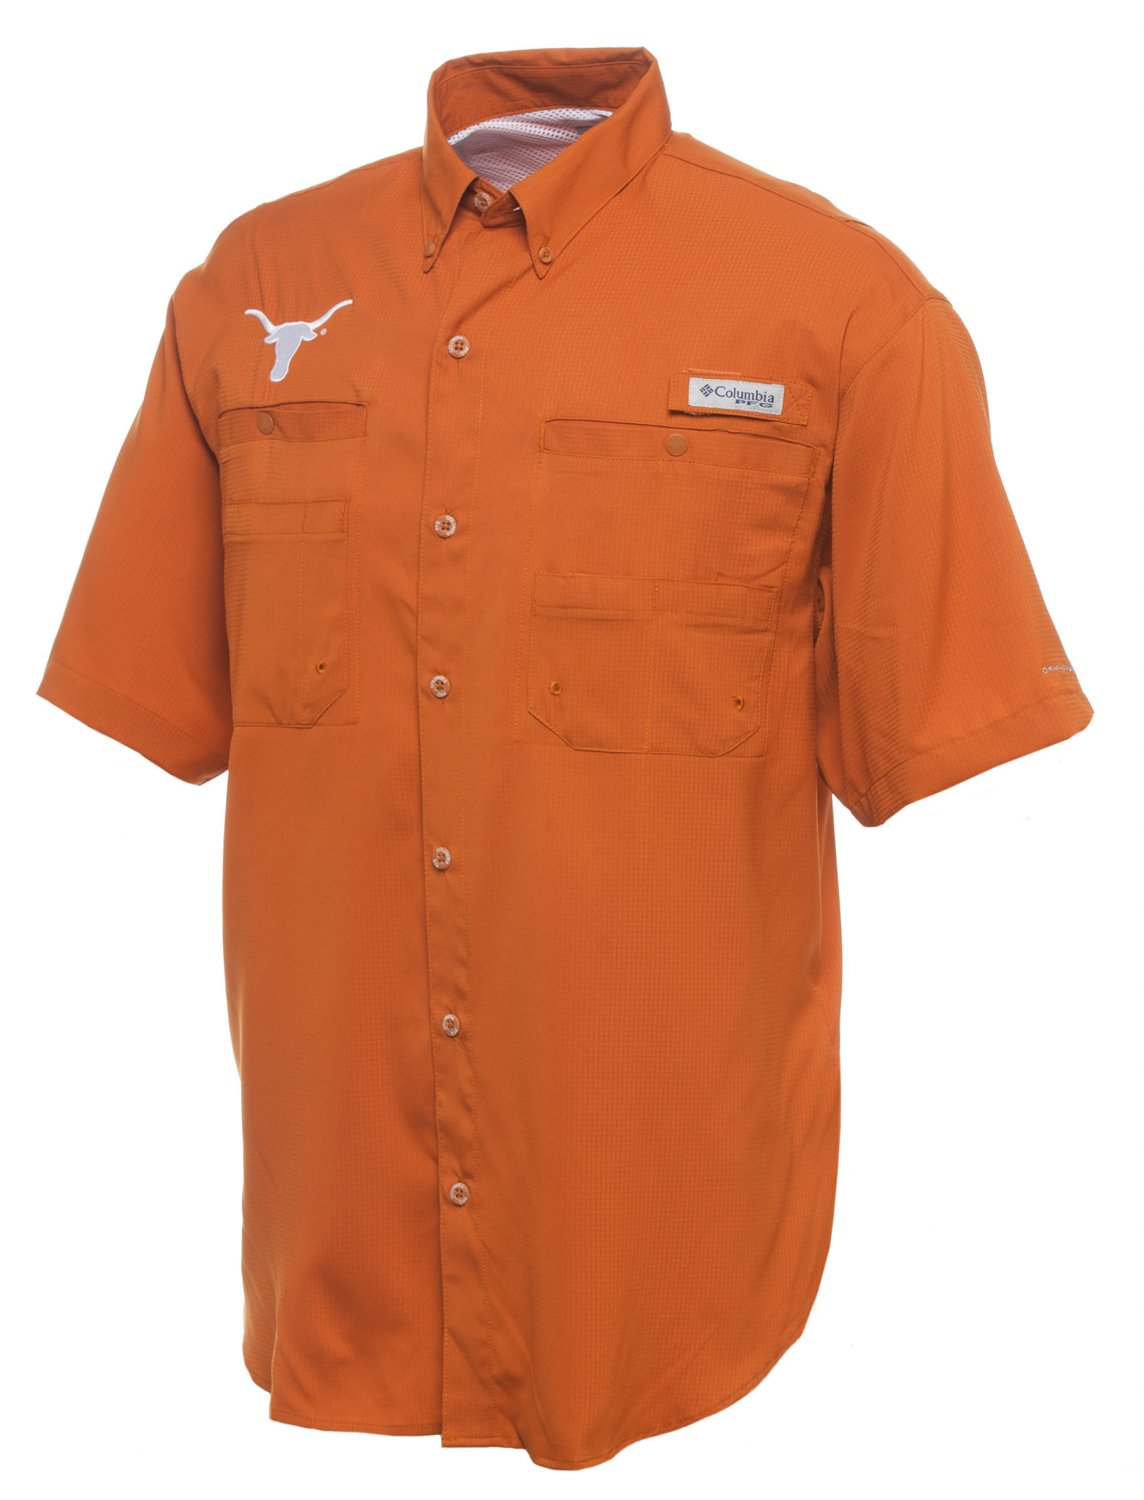 31008a43b Display product reviews for Columbia Sportswear Men's University of Texas  Collegiate Tamiami Short Sleeve Shirt